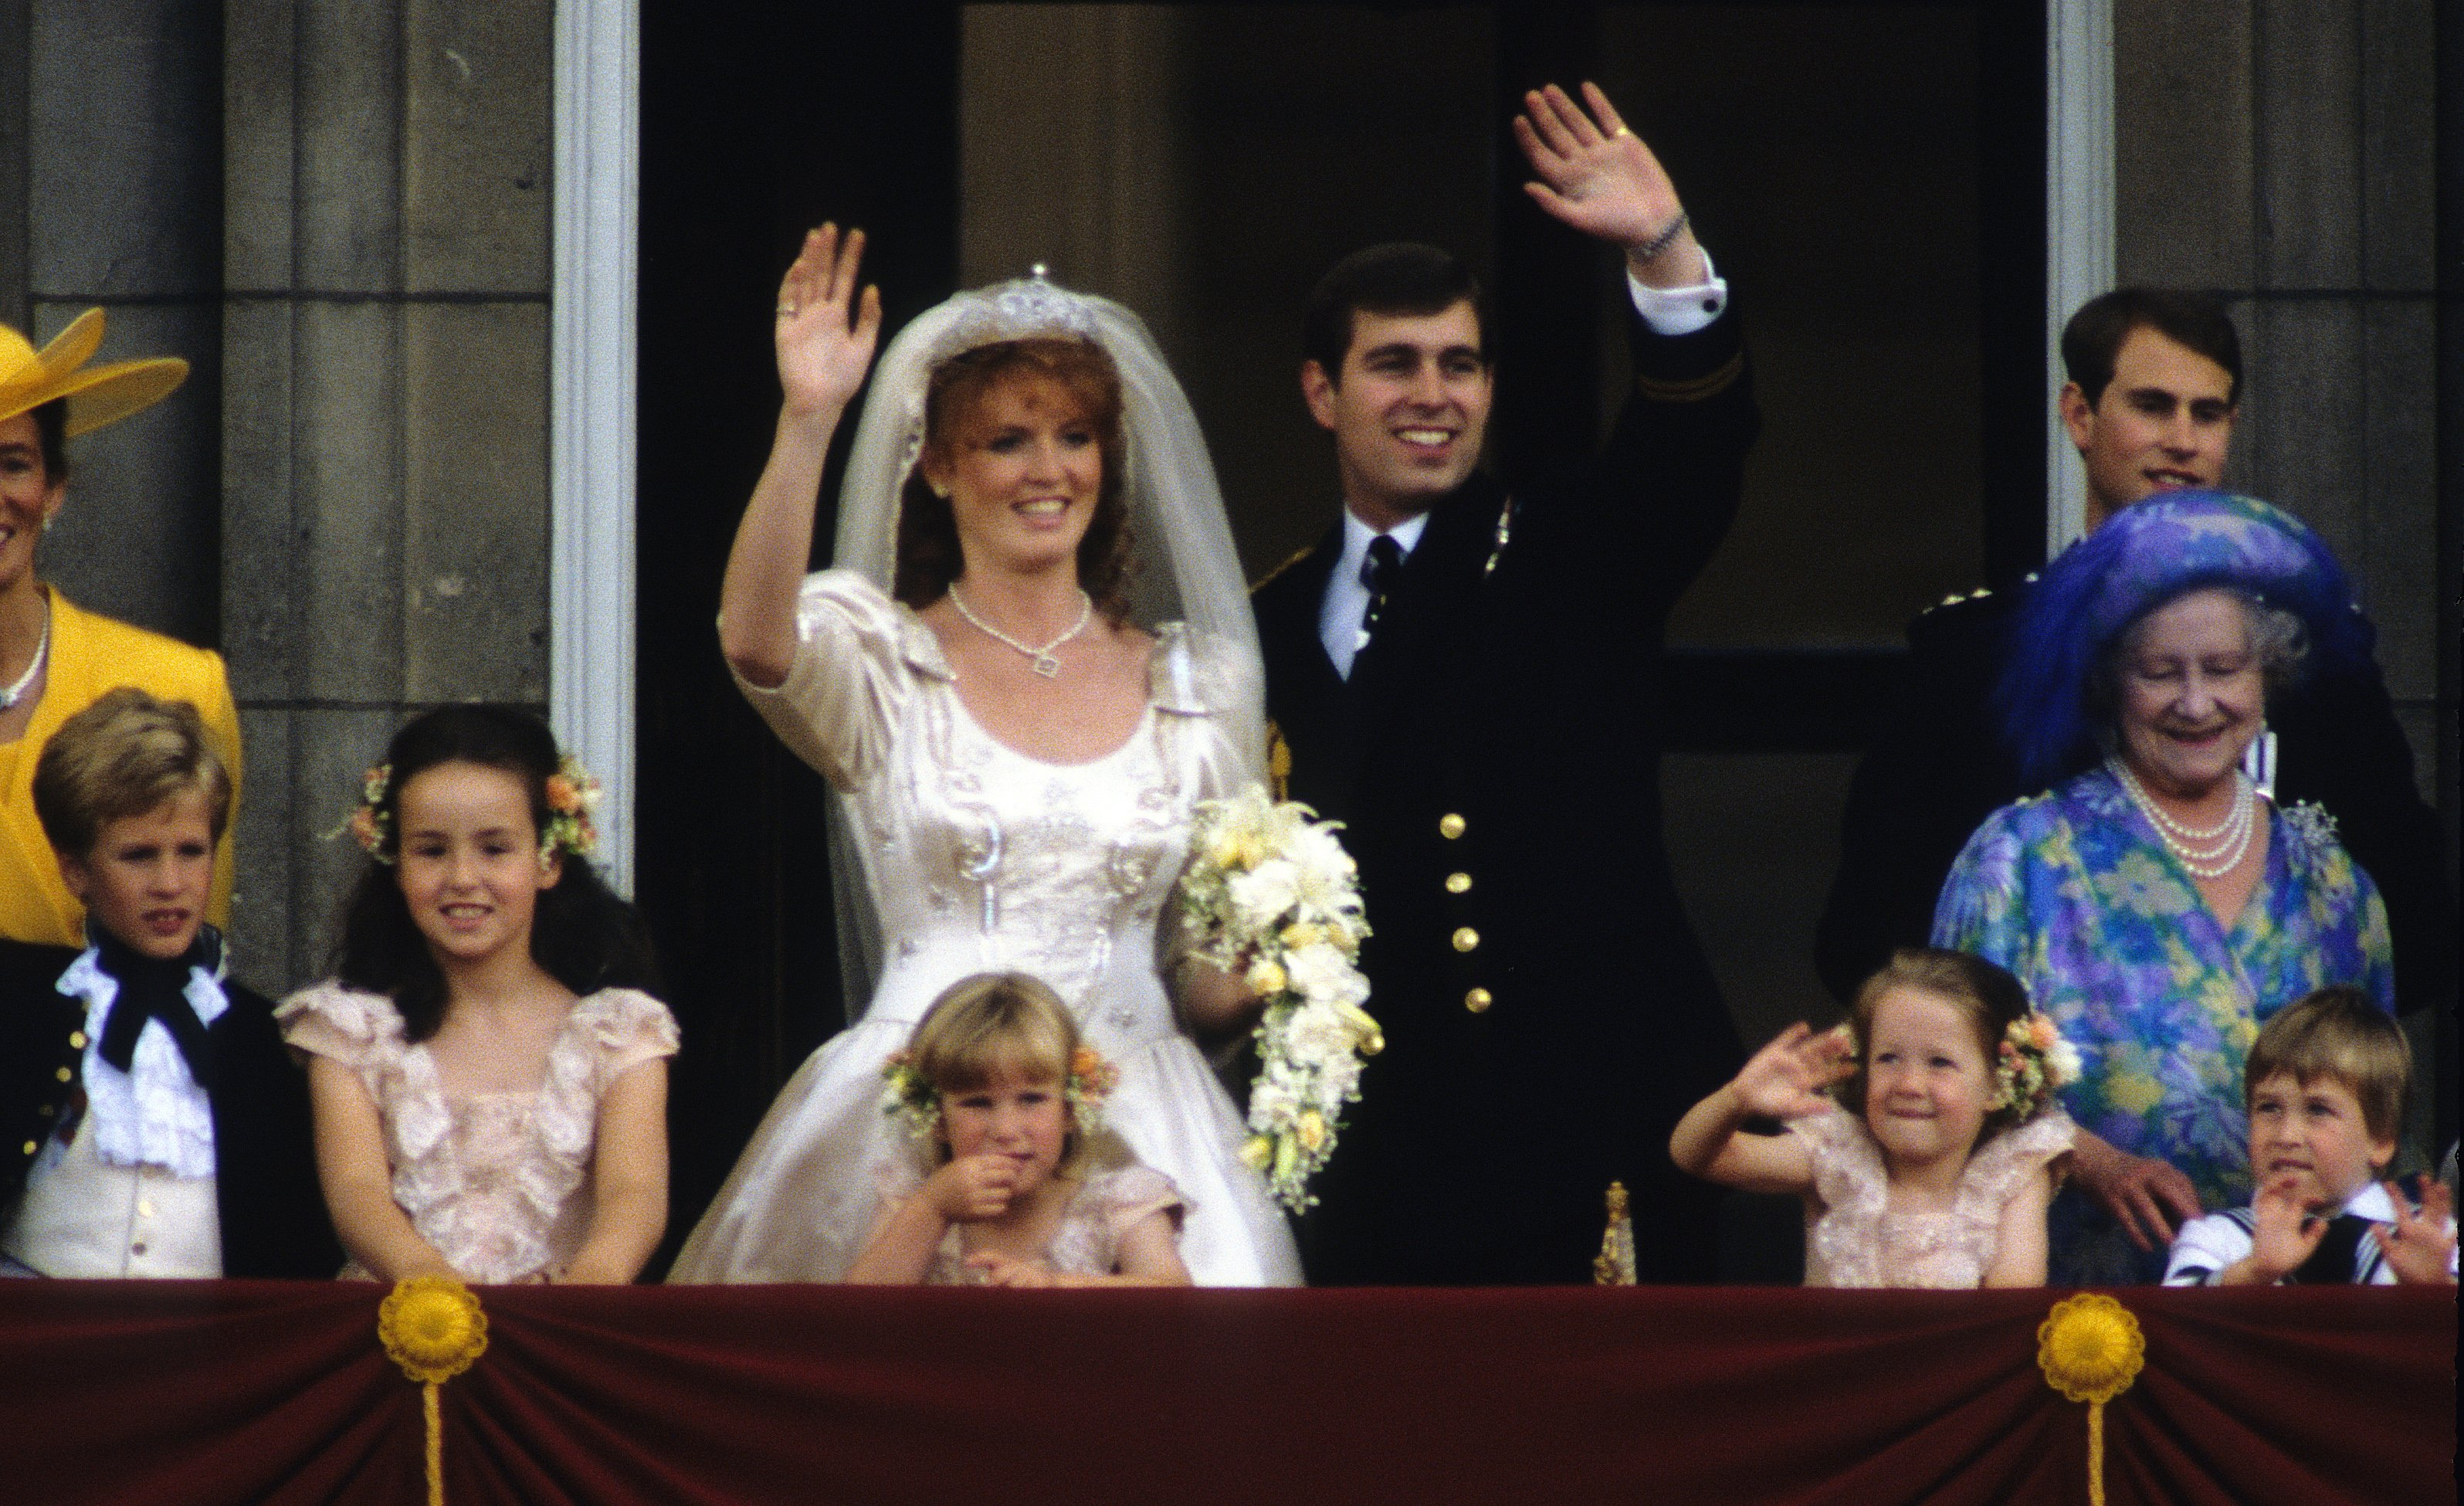 Sarah Ferguson, Duchess of York and Prince Andrew, Duke of York on their wedding day on July 23, 1986, in London, England.   Source: Getty Images.